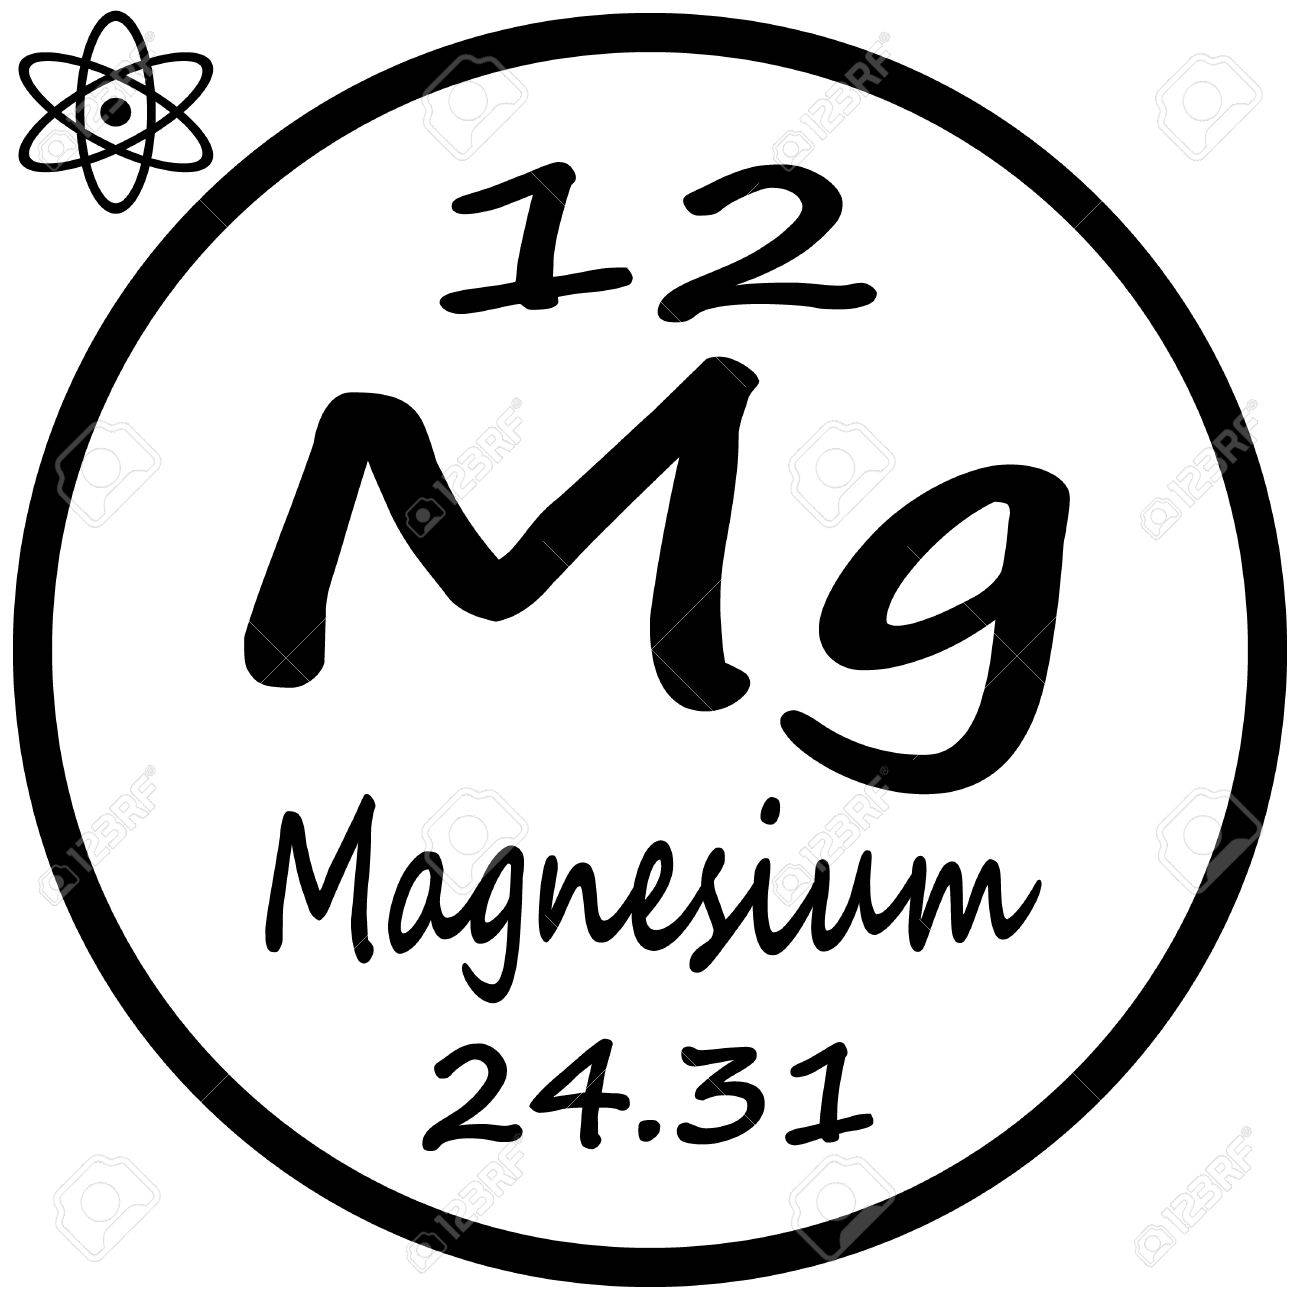 Periodic table of elements magnesium royalty free cliparts periodic table of elements magnesium stock vector 53482431 urtaz Images